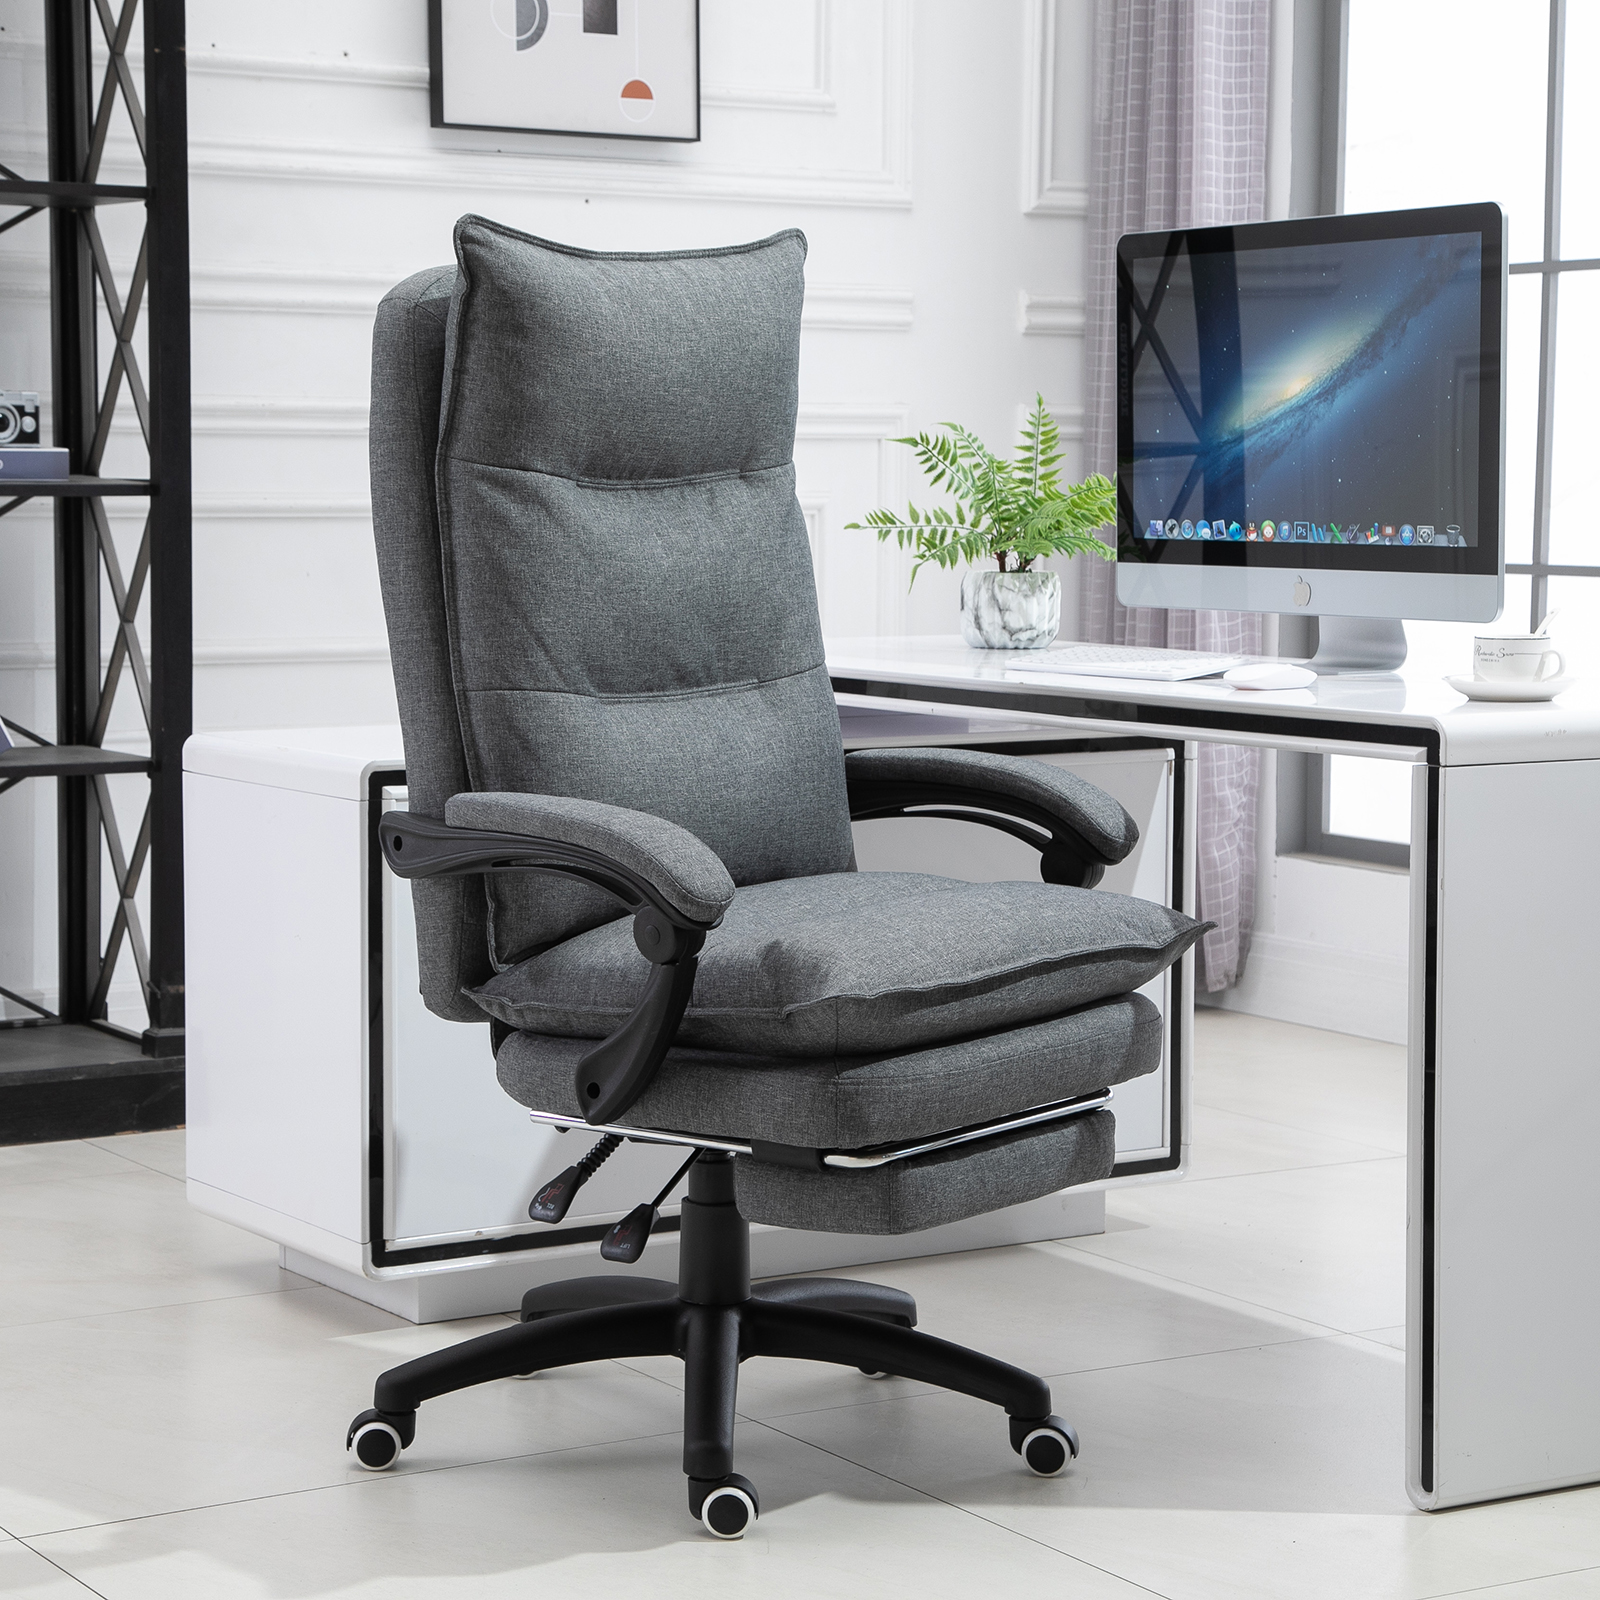 Vinsetto Office Chair Adjust Height Recliner With Footrest Wheel High Back 842525119399 Ebay